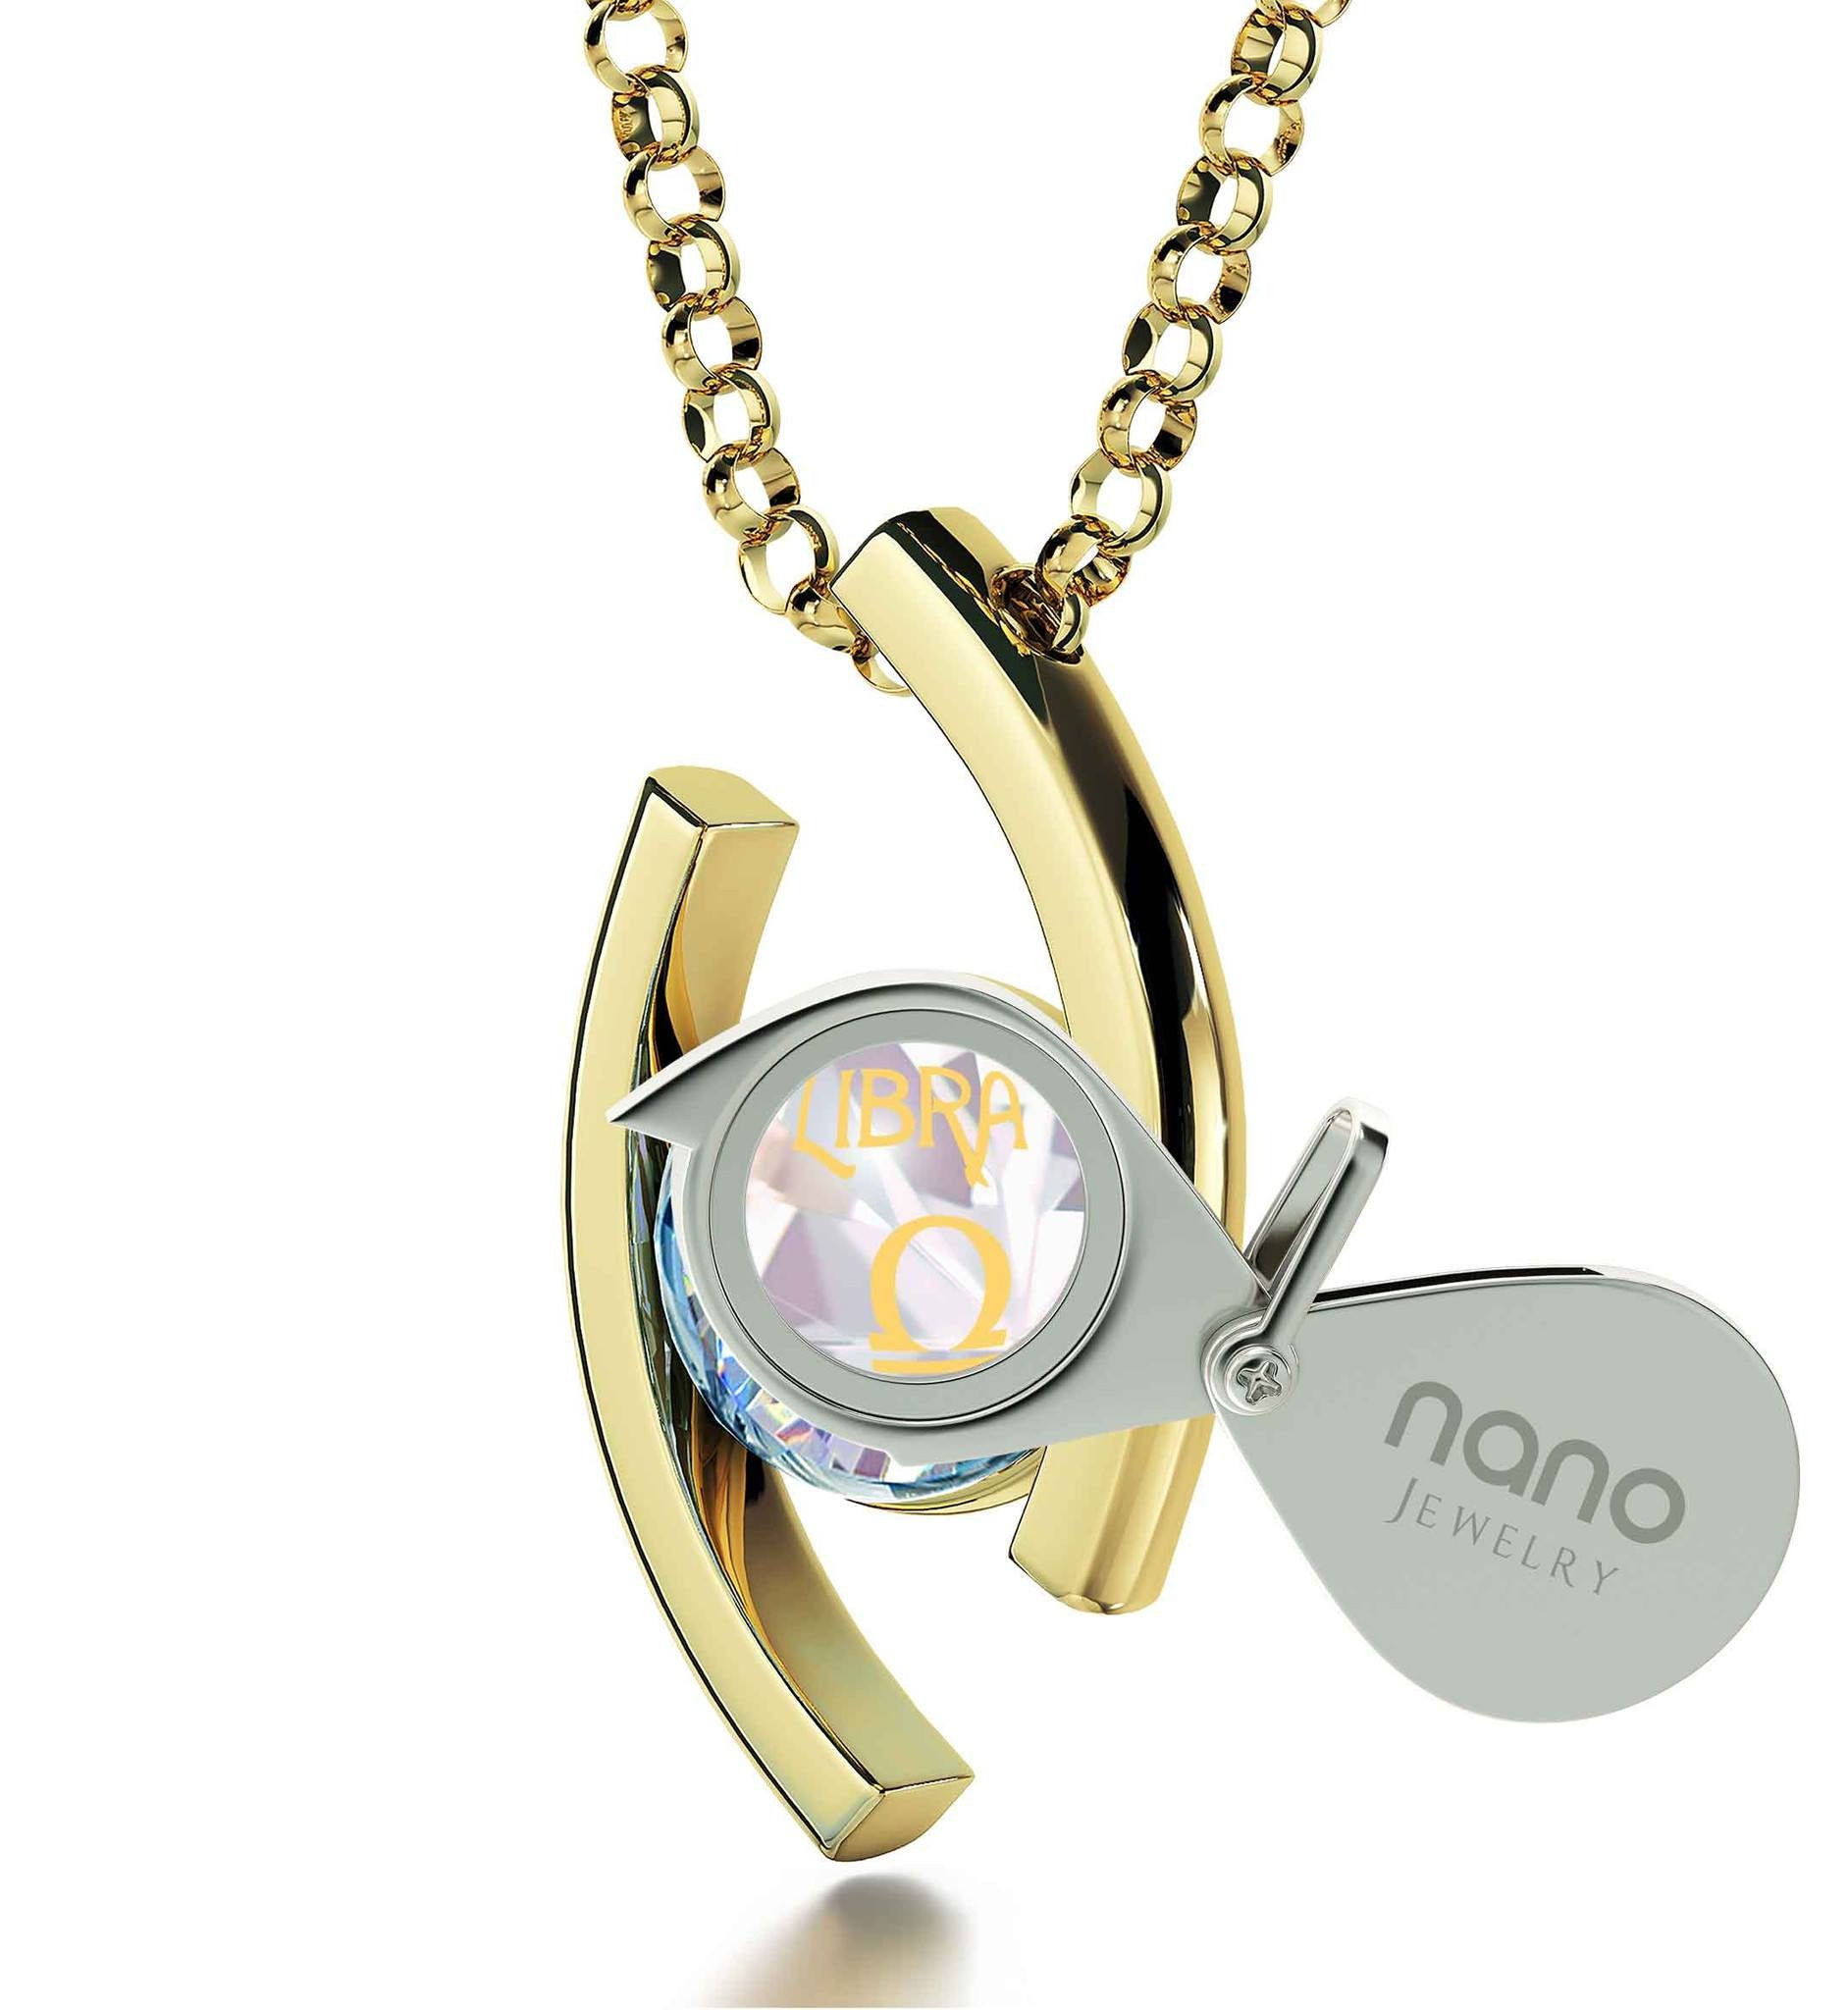 """Libra Jewelry With 24k Zodiac Imprint, Valentines Ideas for Her, Womens Gold Necklace, by Nano"""